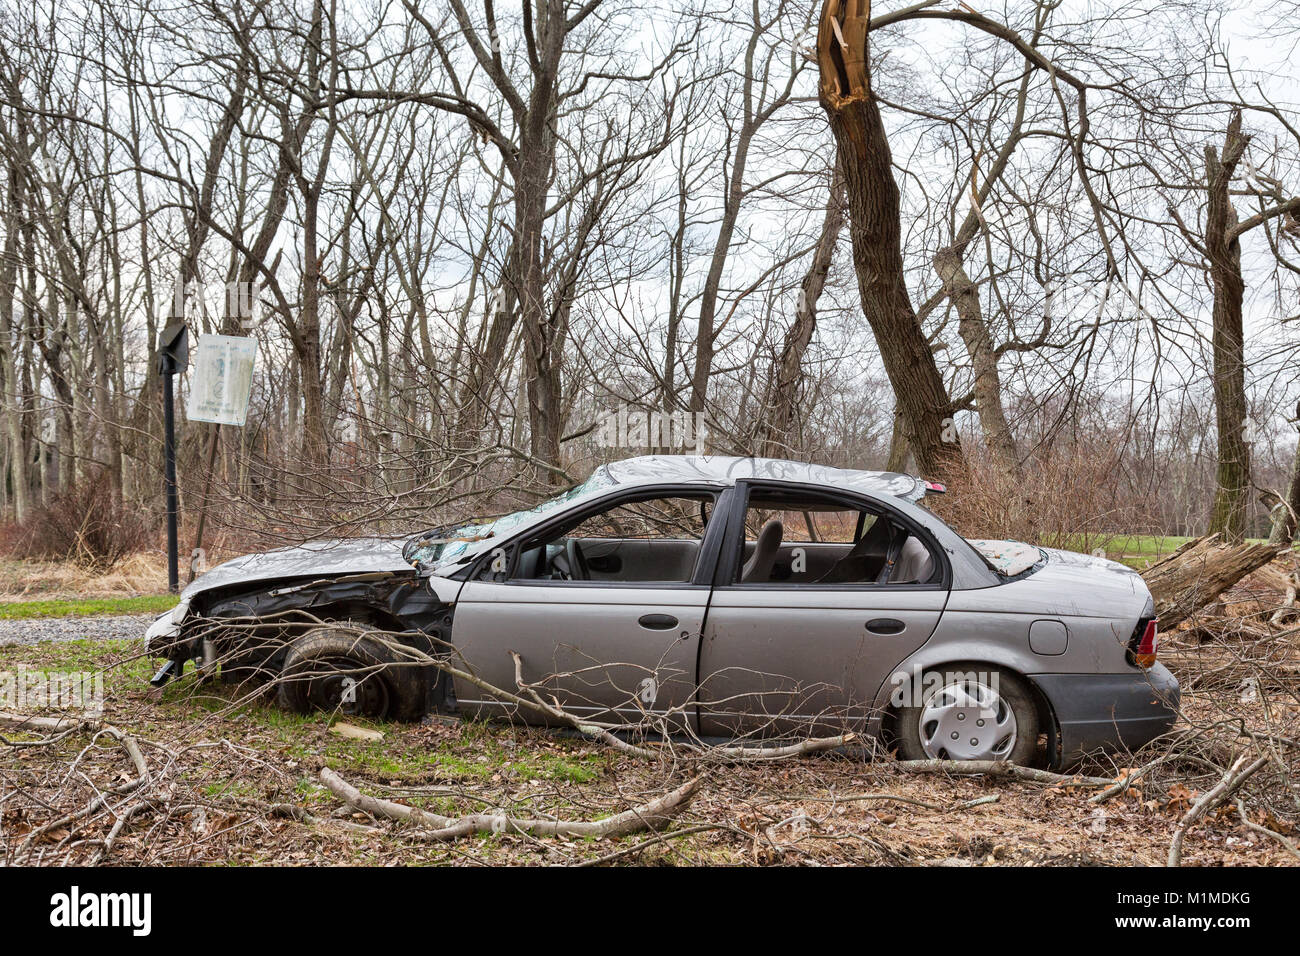 Accident Car Crashed Tree Stockfotos & Accident Car Crashed Tree ...